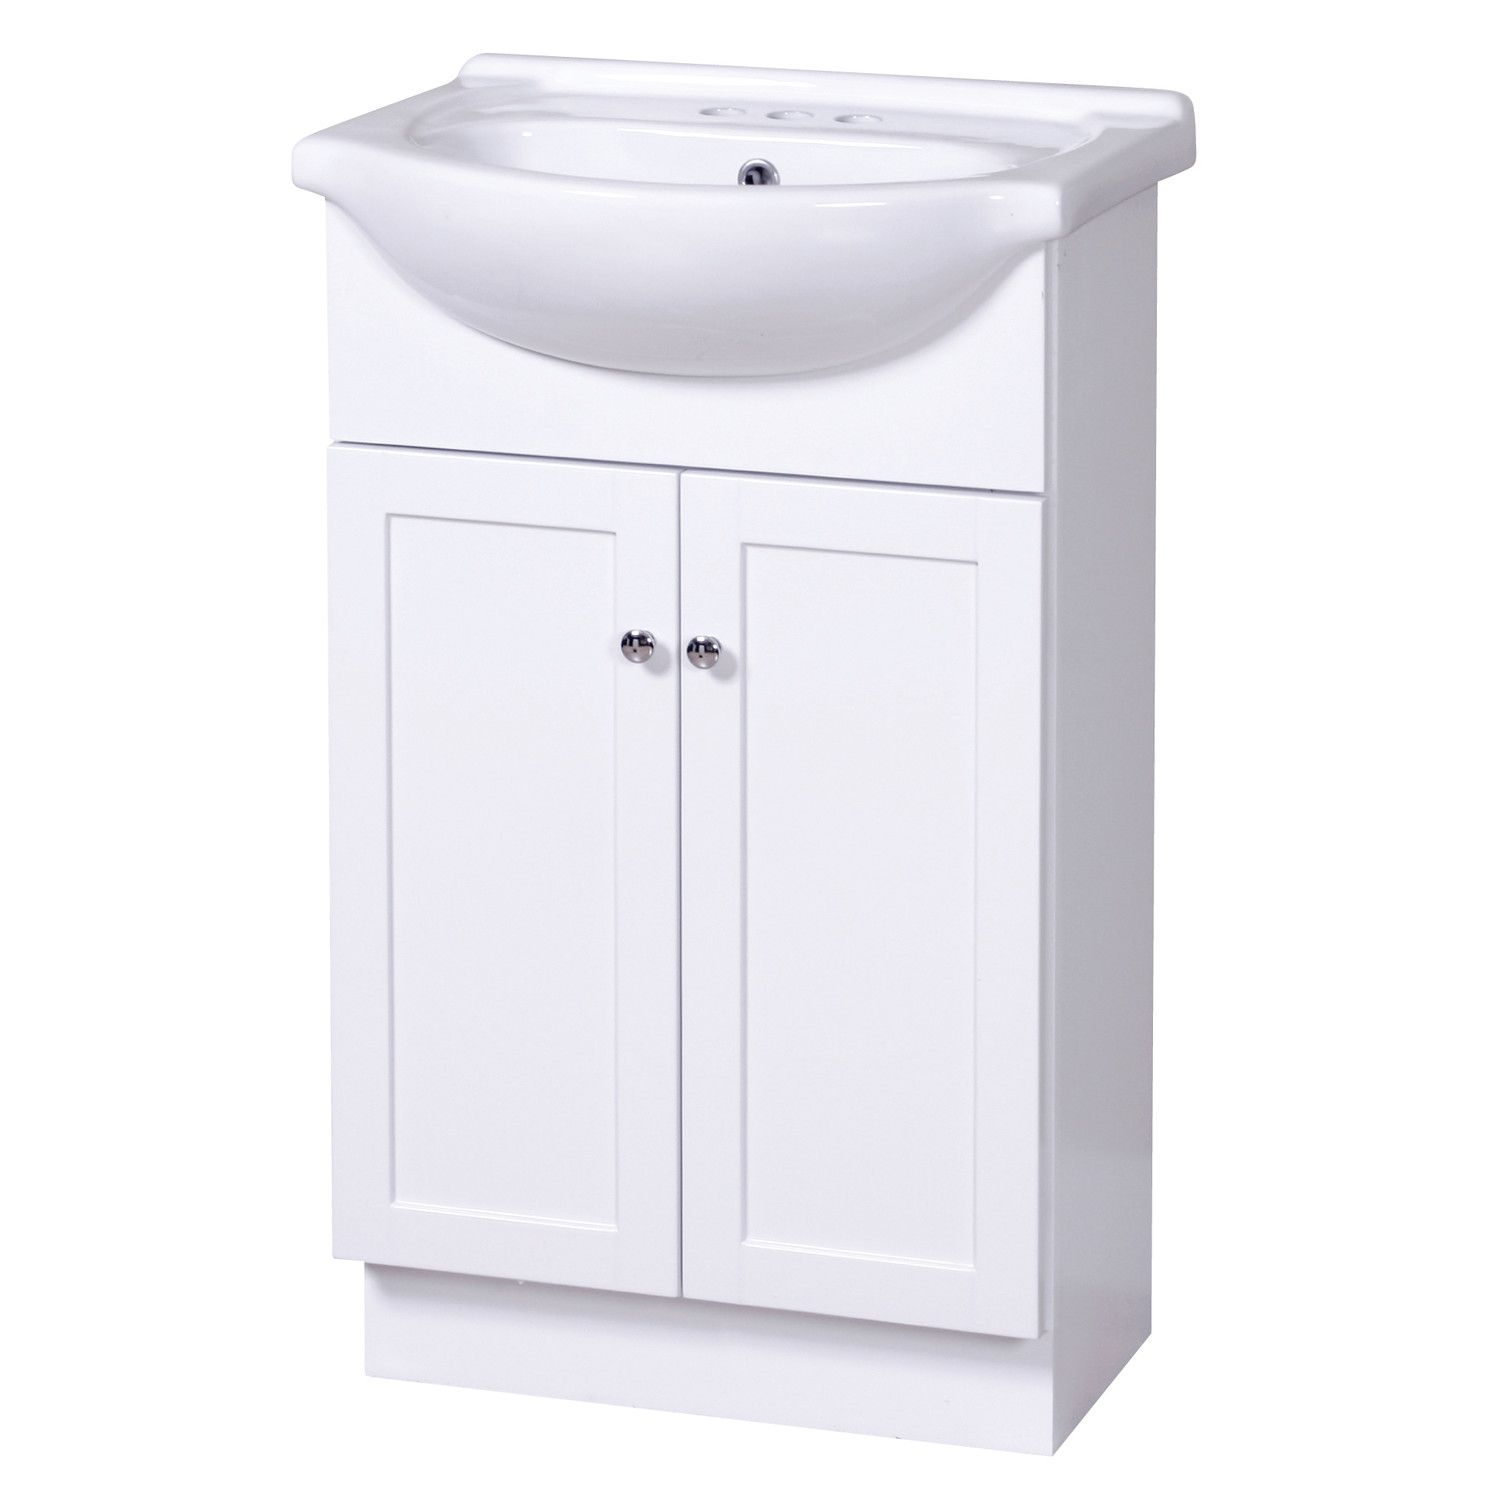 modern vanity double depot bathroom foremost floor rustic bath sink of size inset and home contemporary full vanities tremendous astria combo cabinets